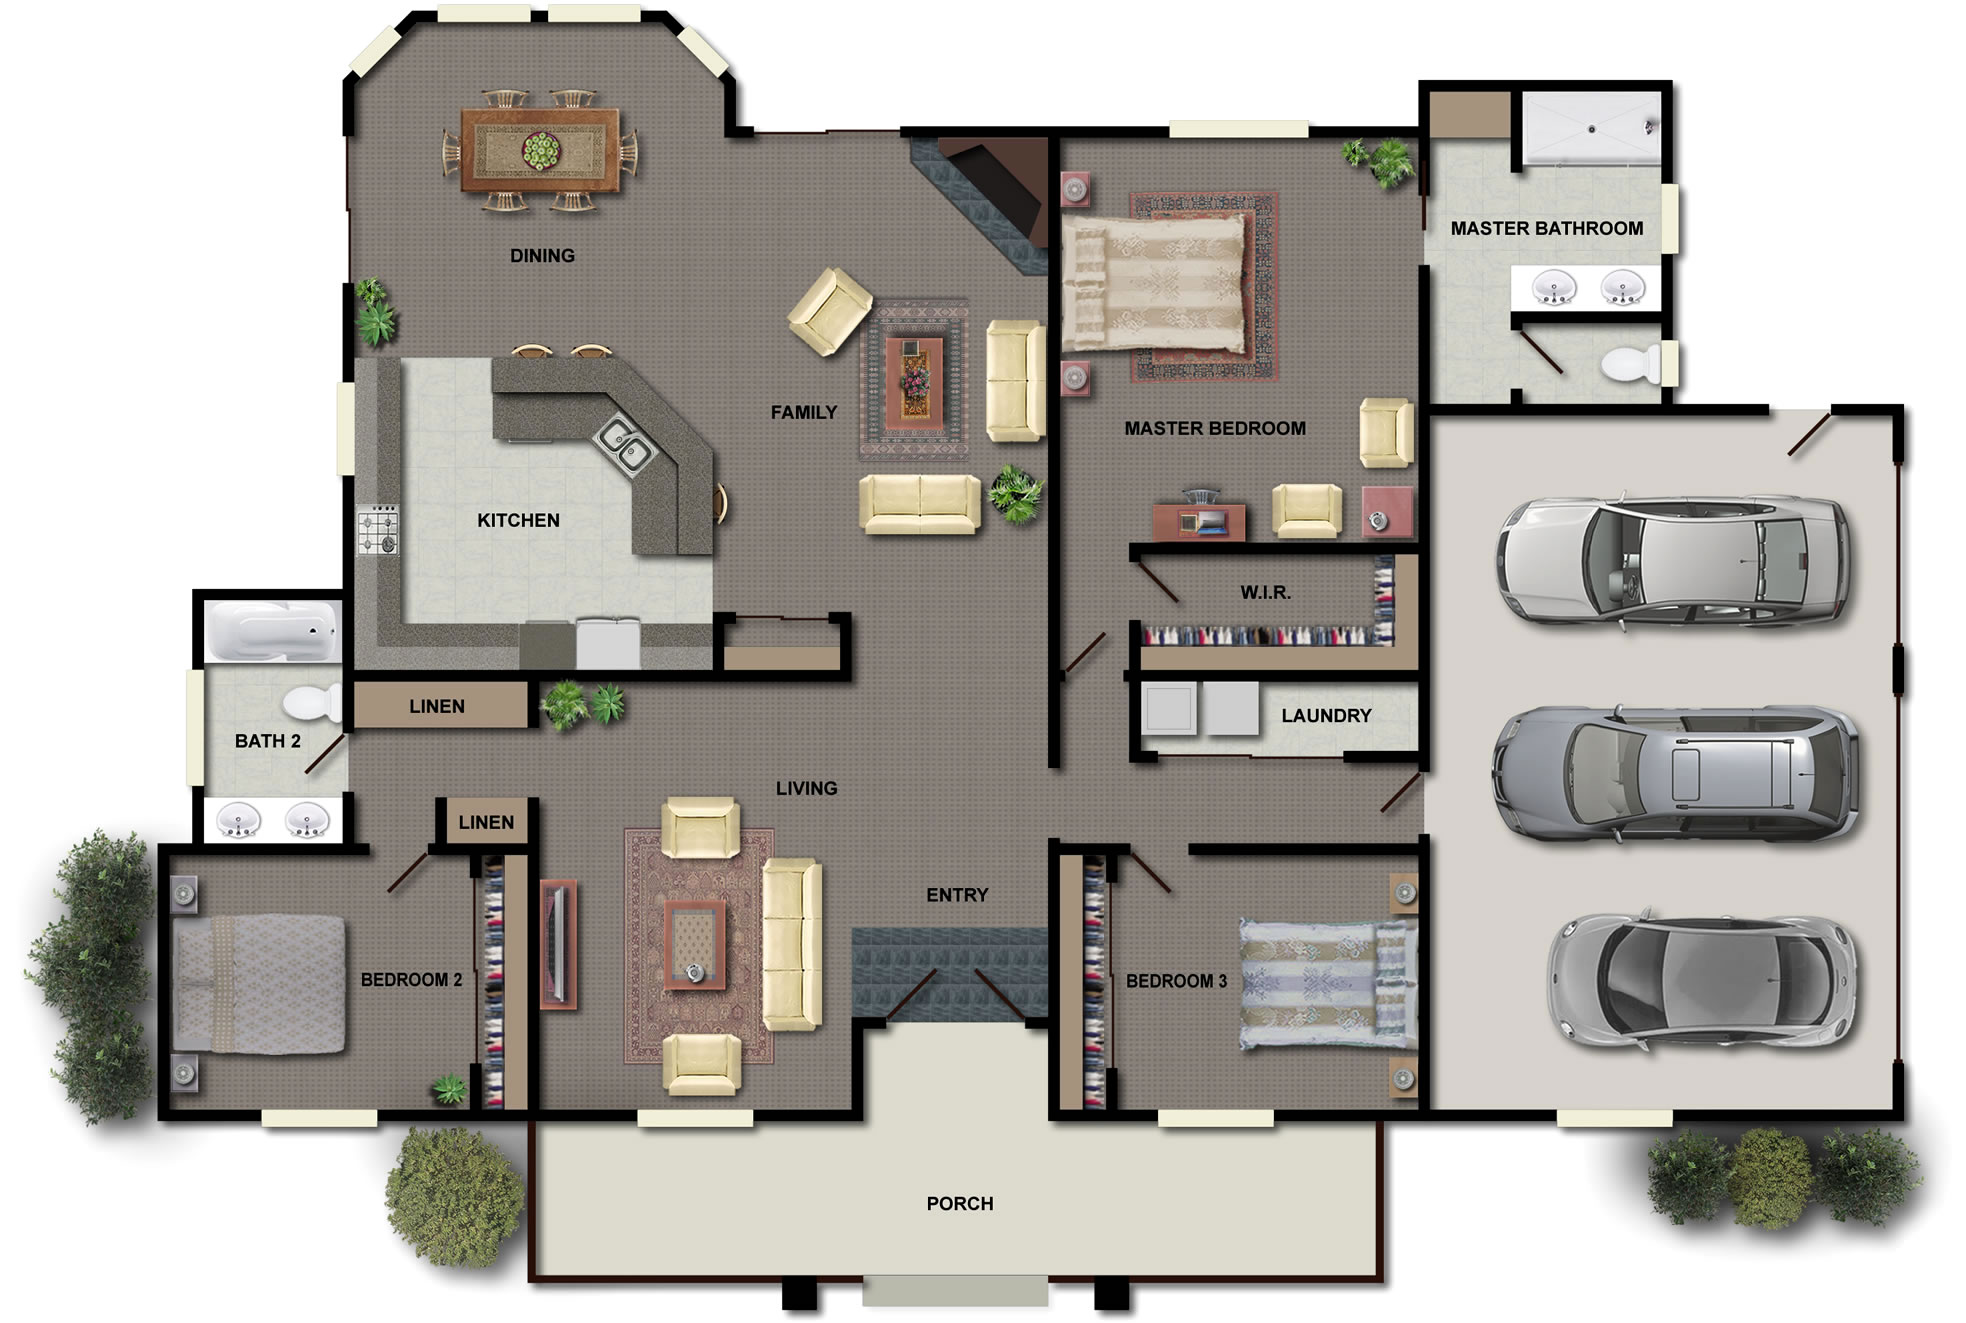 constructing your own home in kenya two bedroom home plans kenya thumb two bedroom house plans - Home Floor Plans